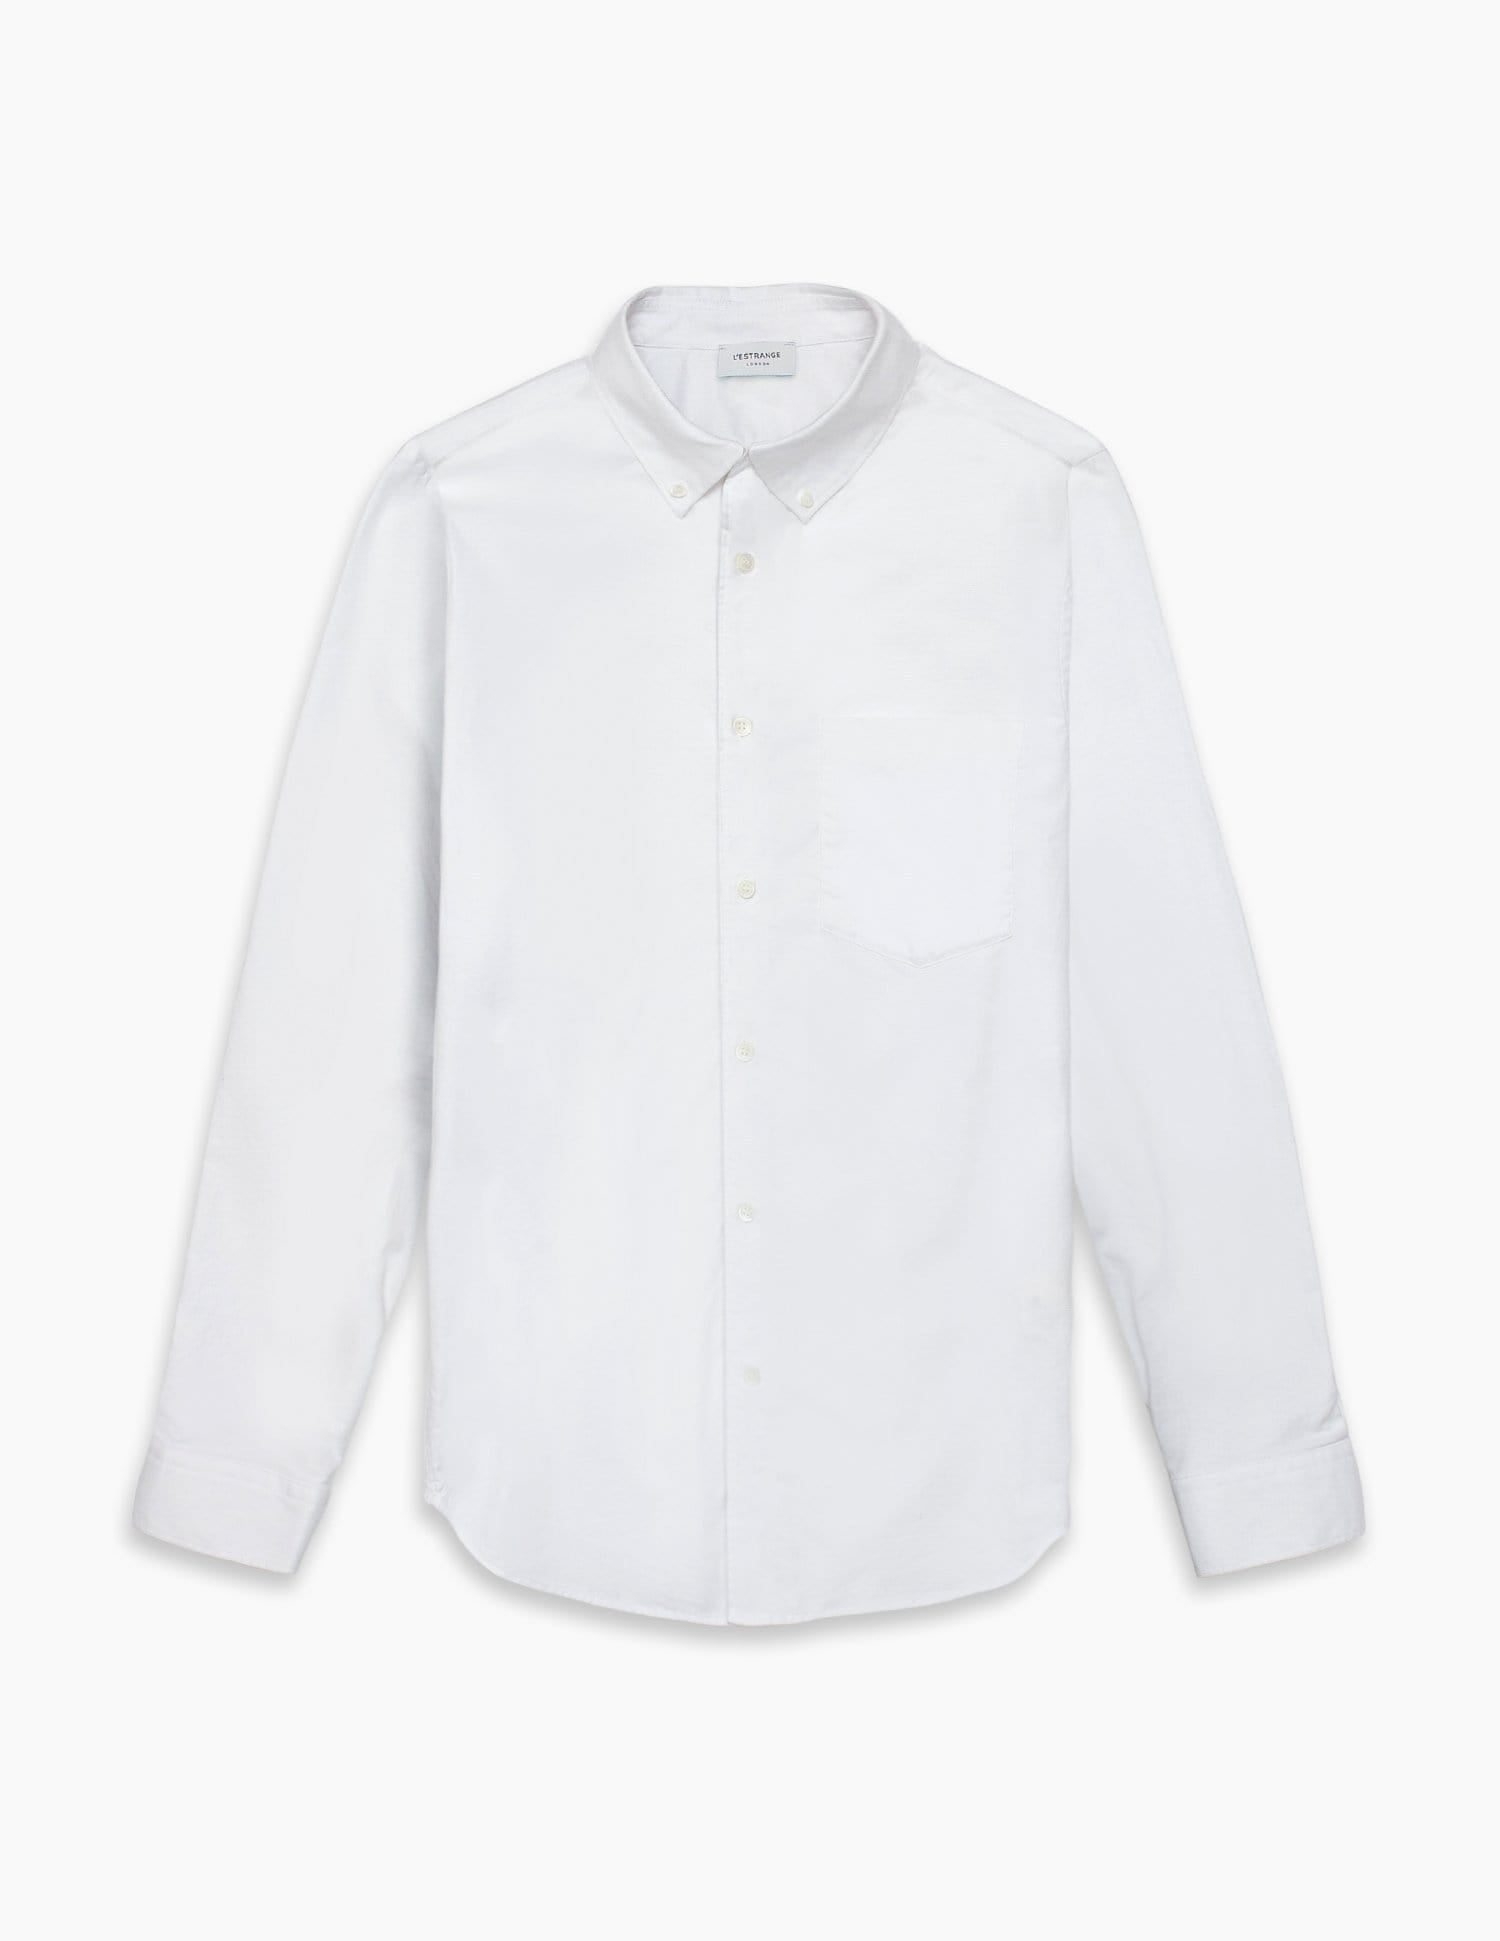 The All Day Oxford Shirt || White | Stretch Cotton